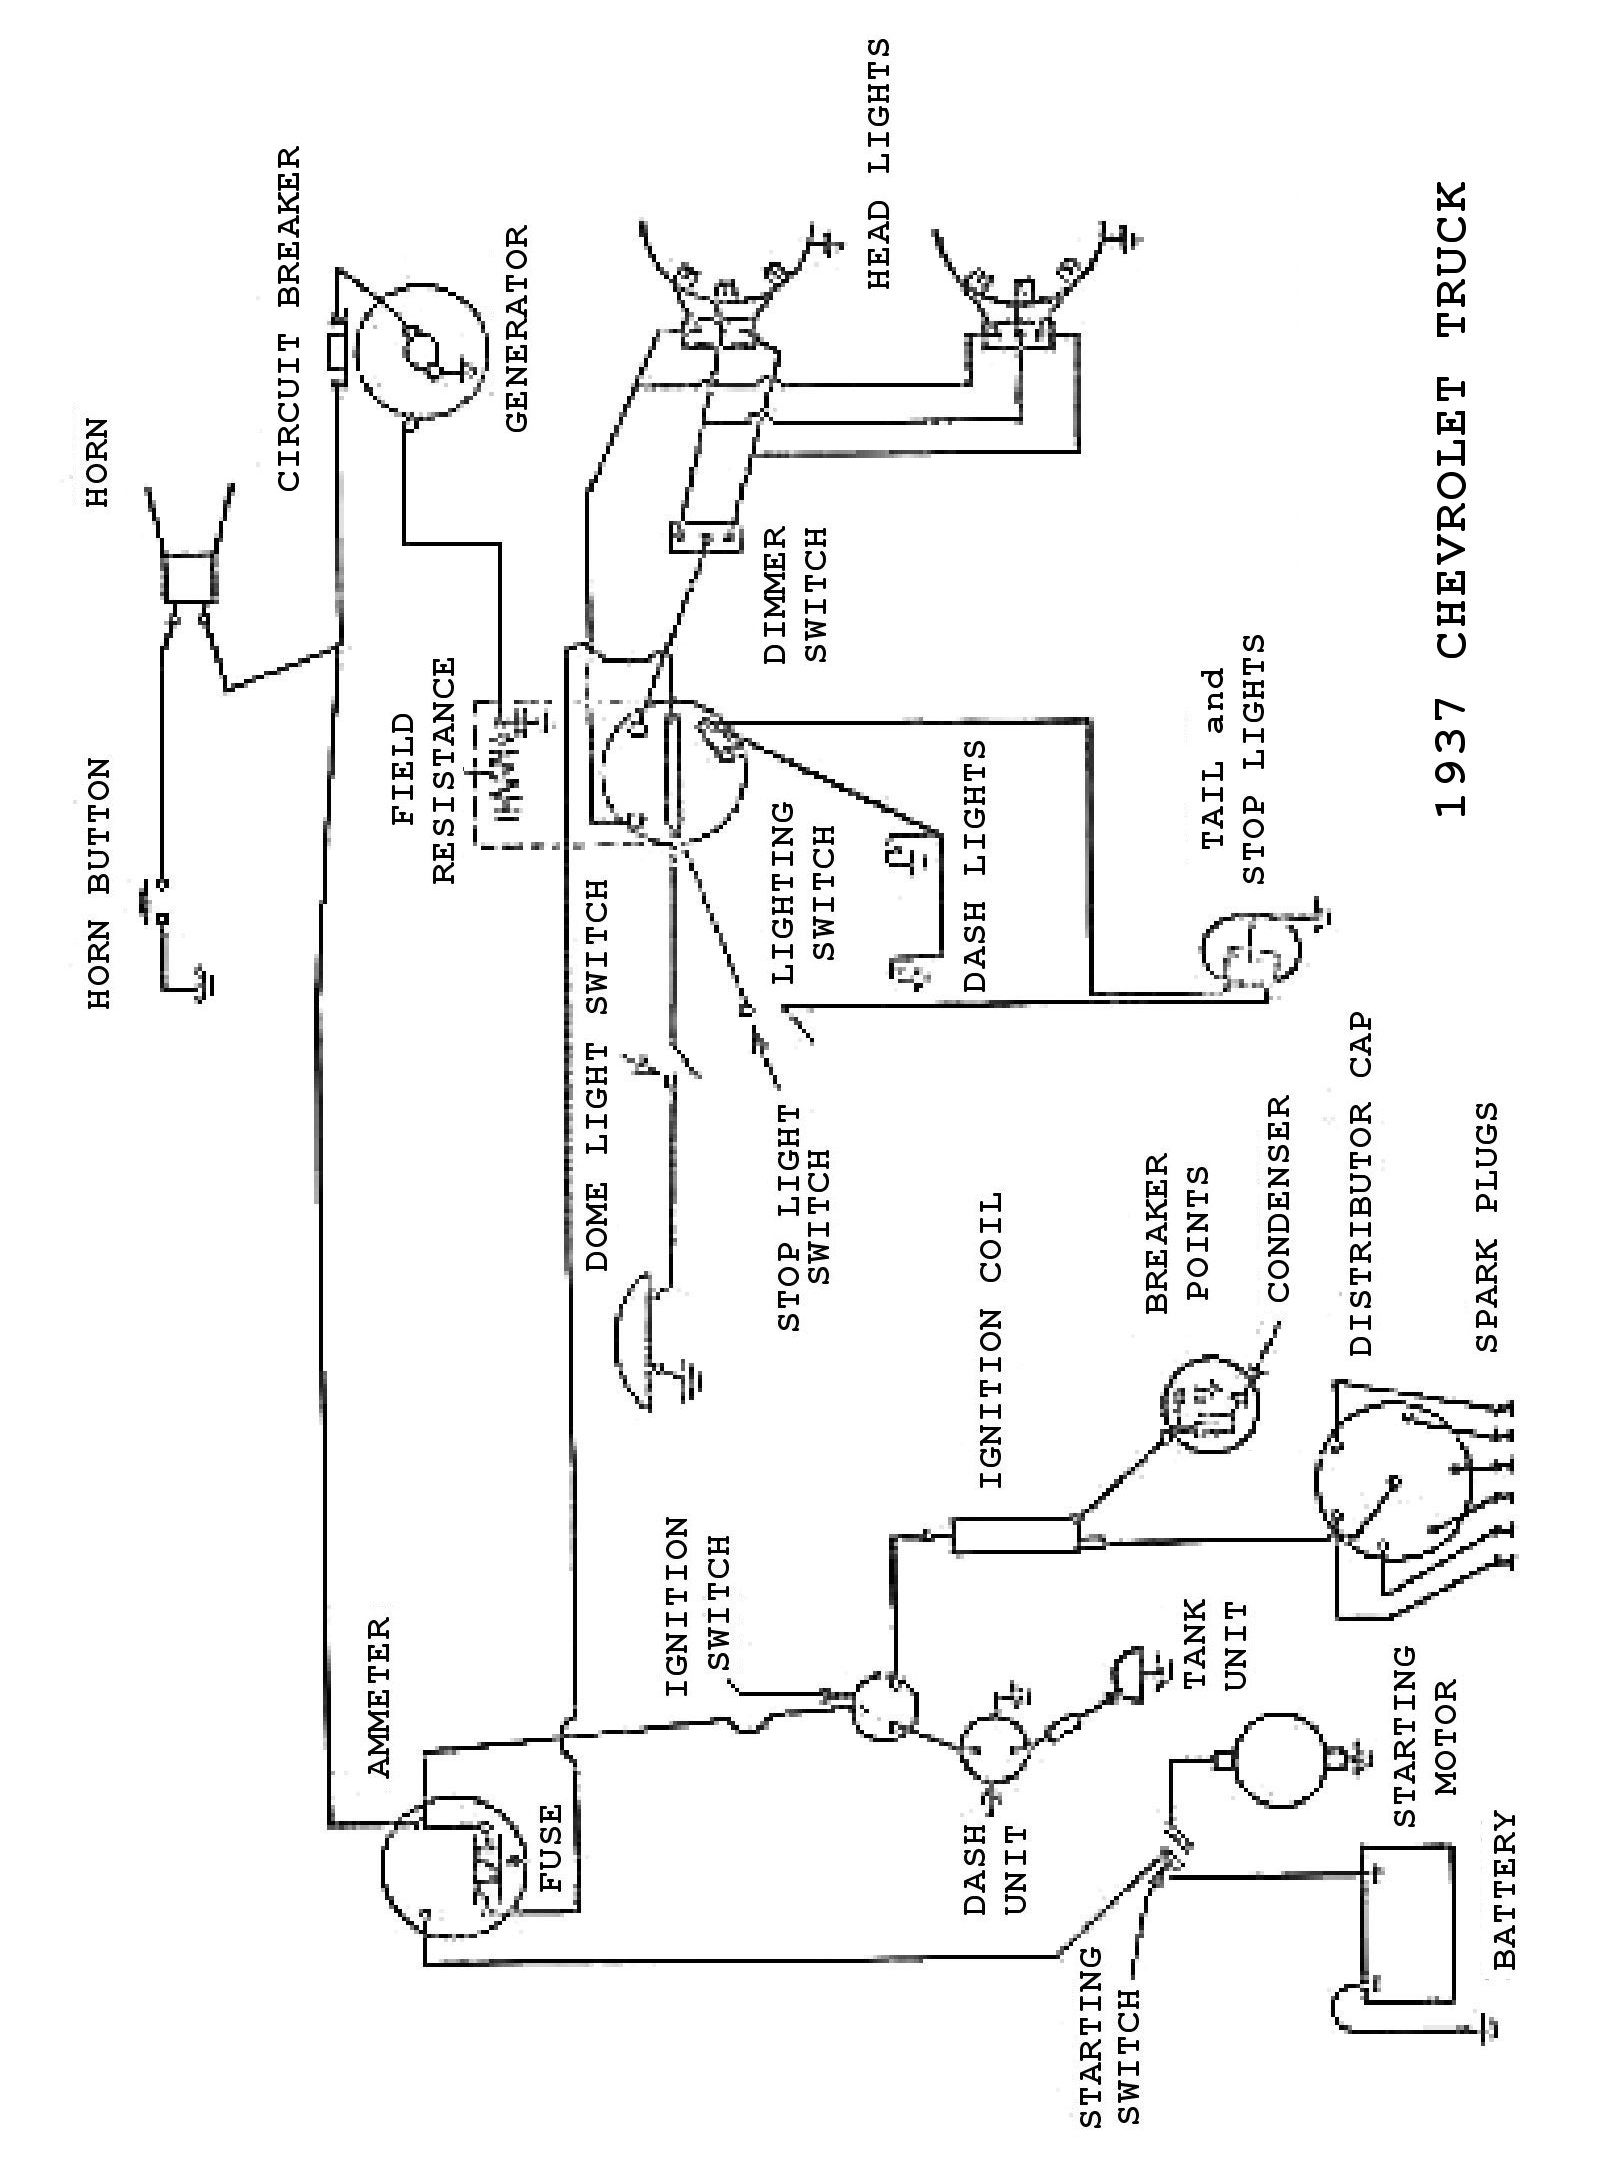 37truck chevy wiring diagrams 53 ford wiring diagram at bakdesigns.co